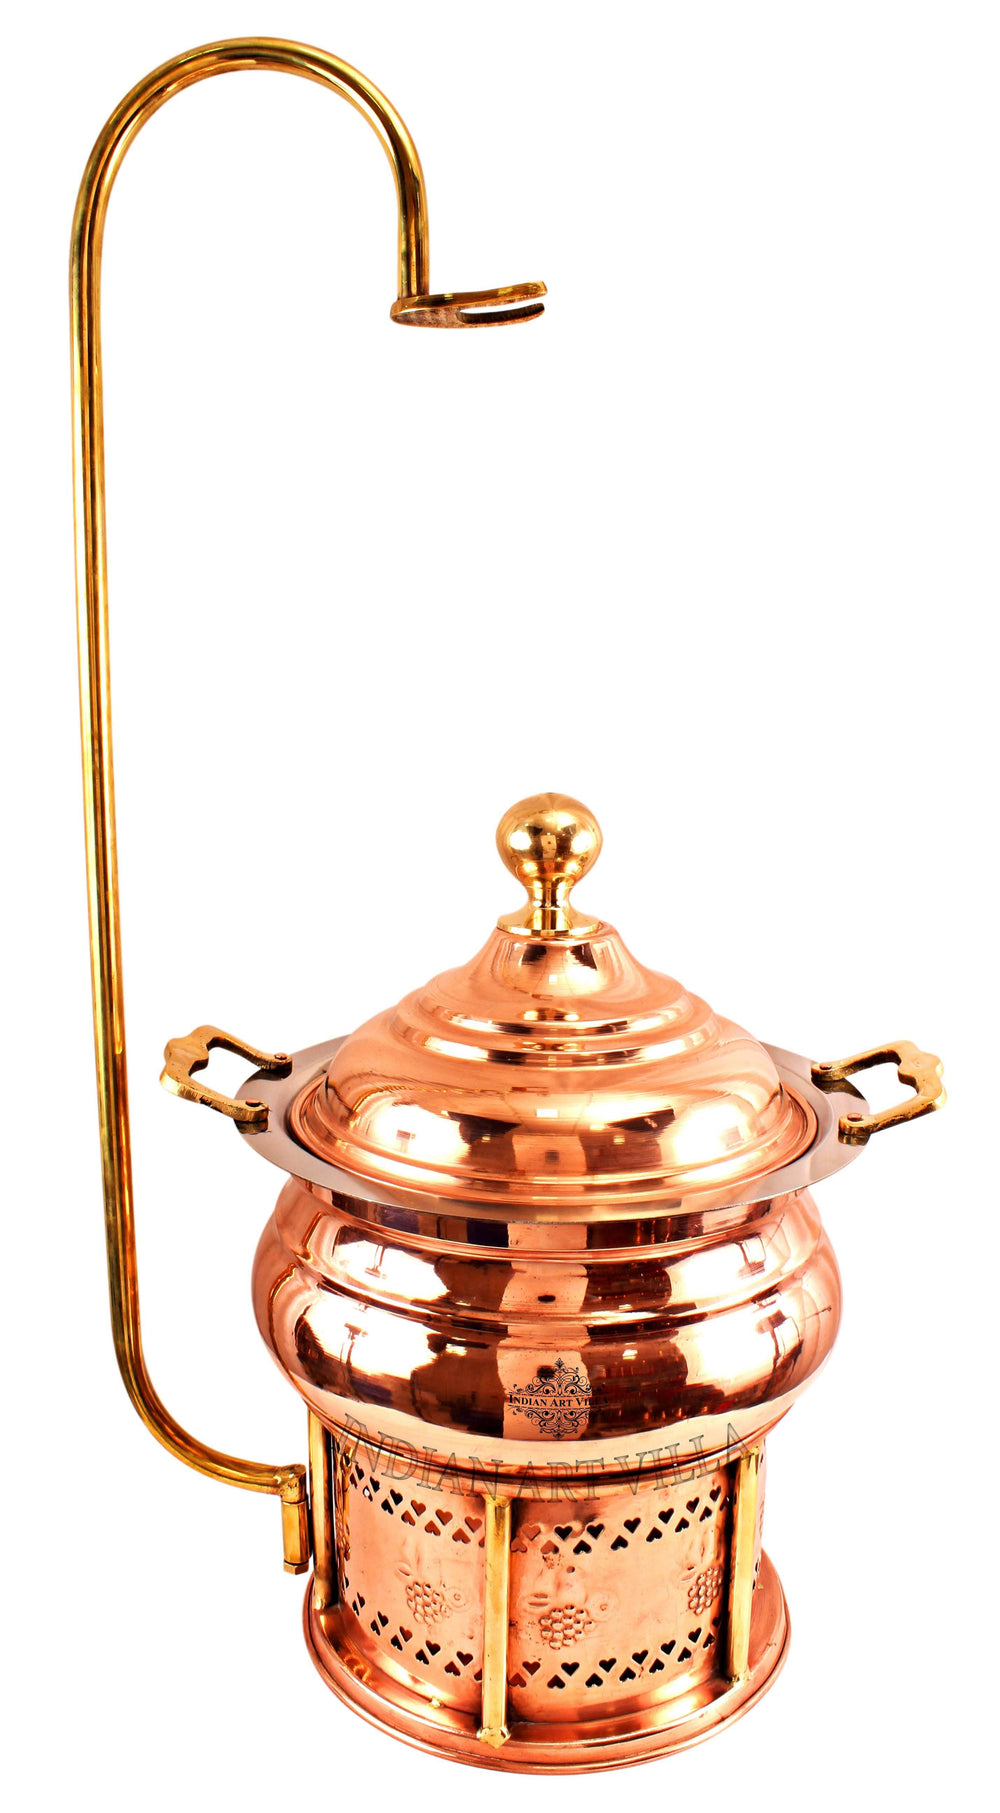 Steel Copper Chaffing Dish With Stand & Handle - 135.25 Oz | 202.88 Oz | 270.51 Oz Chafing Dishes CC-32